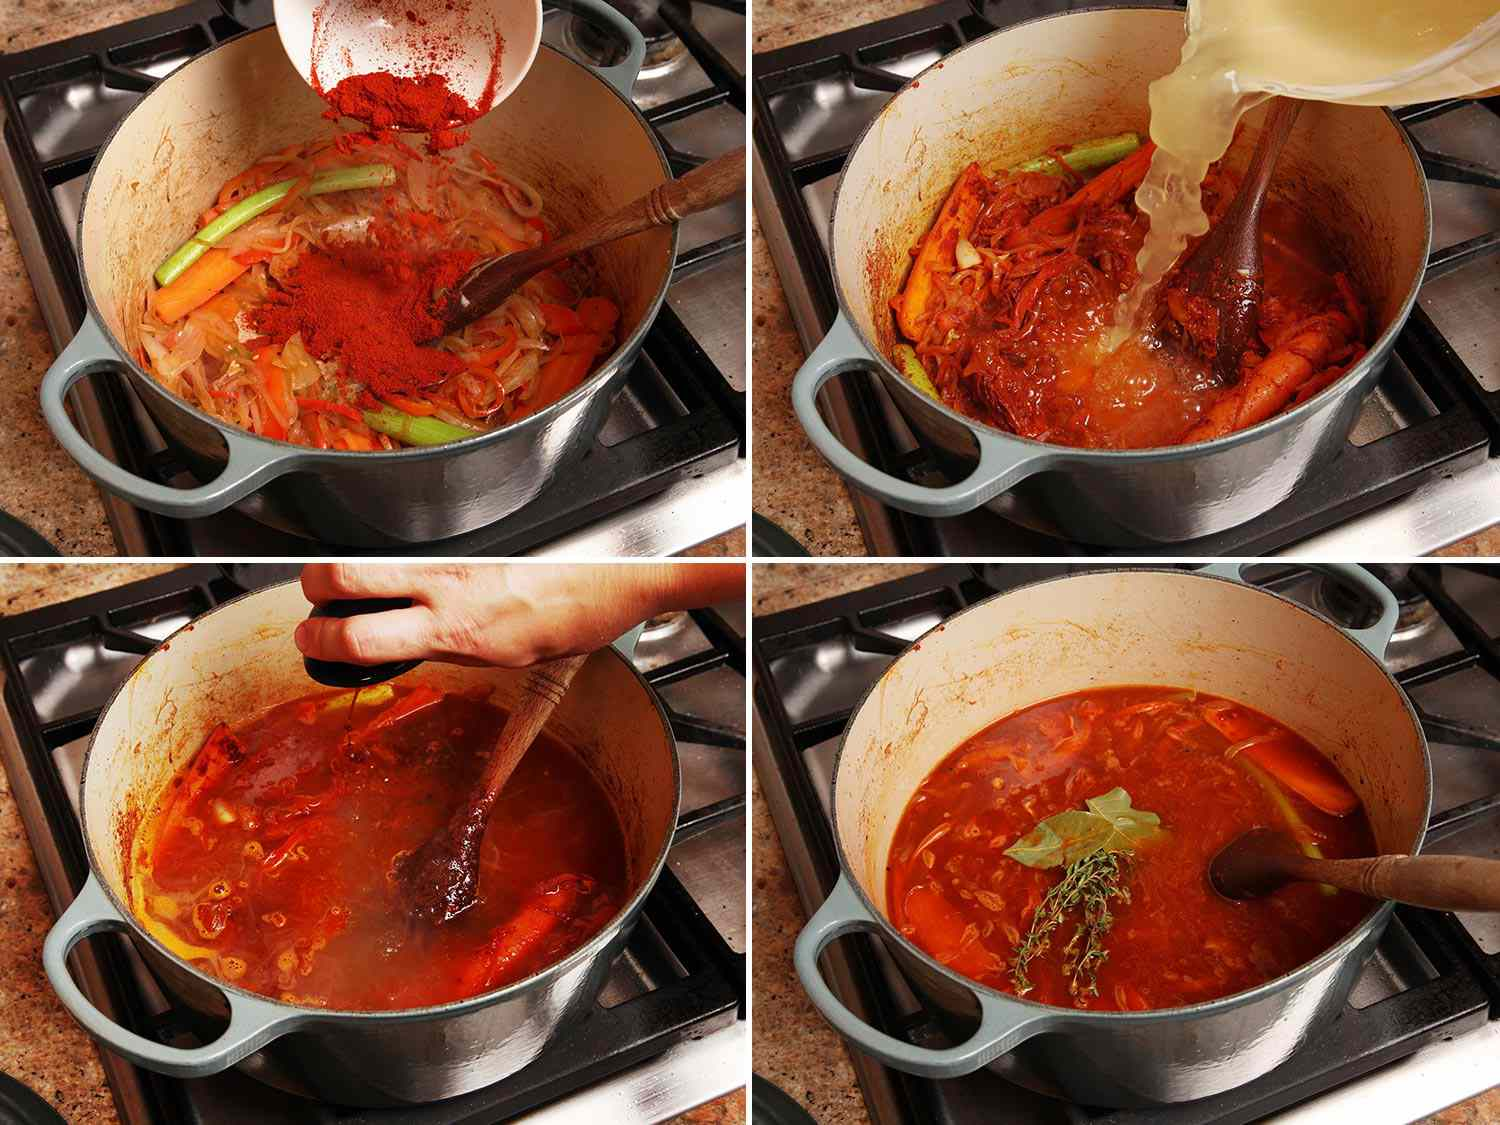 A collage showing the steps of making goulash in an enamel cast iron Dutch oven on a cooktop.